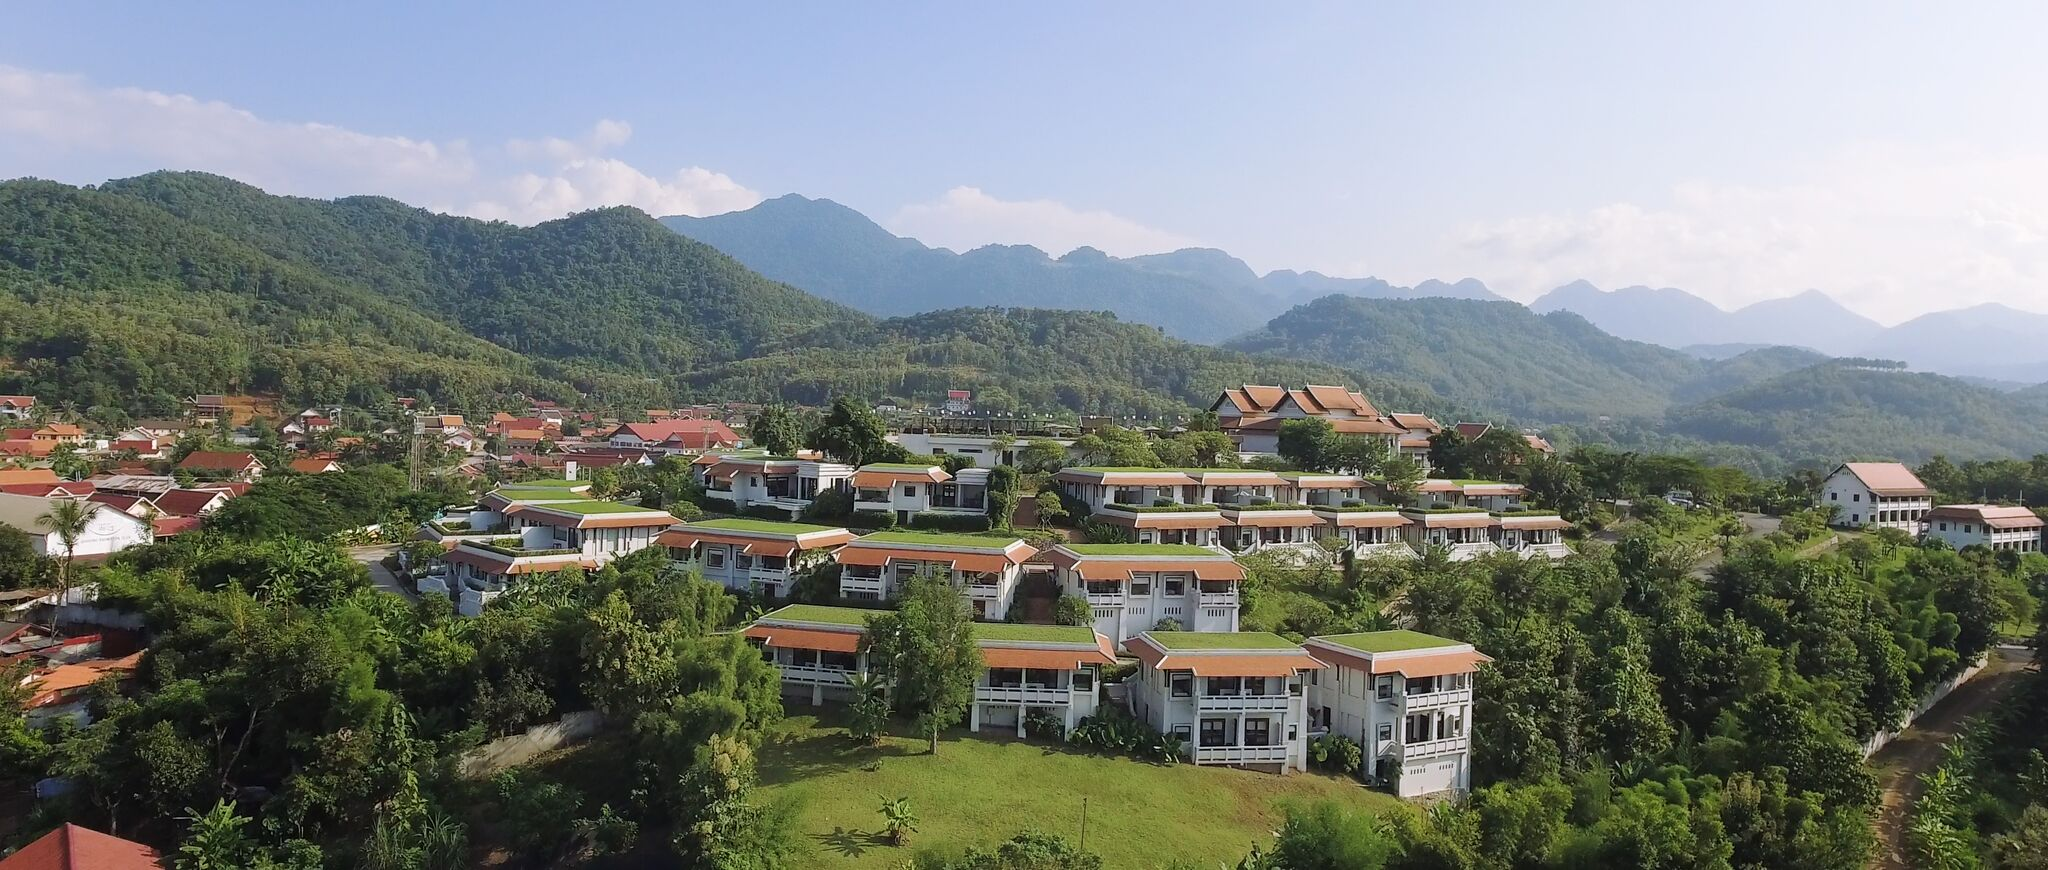 Laos-Luang-Prabang-View-Hotel-aerial-photo-by-Cyril-Eberle-DJI-0001_preview.jpeg